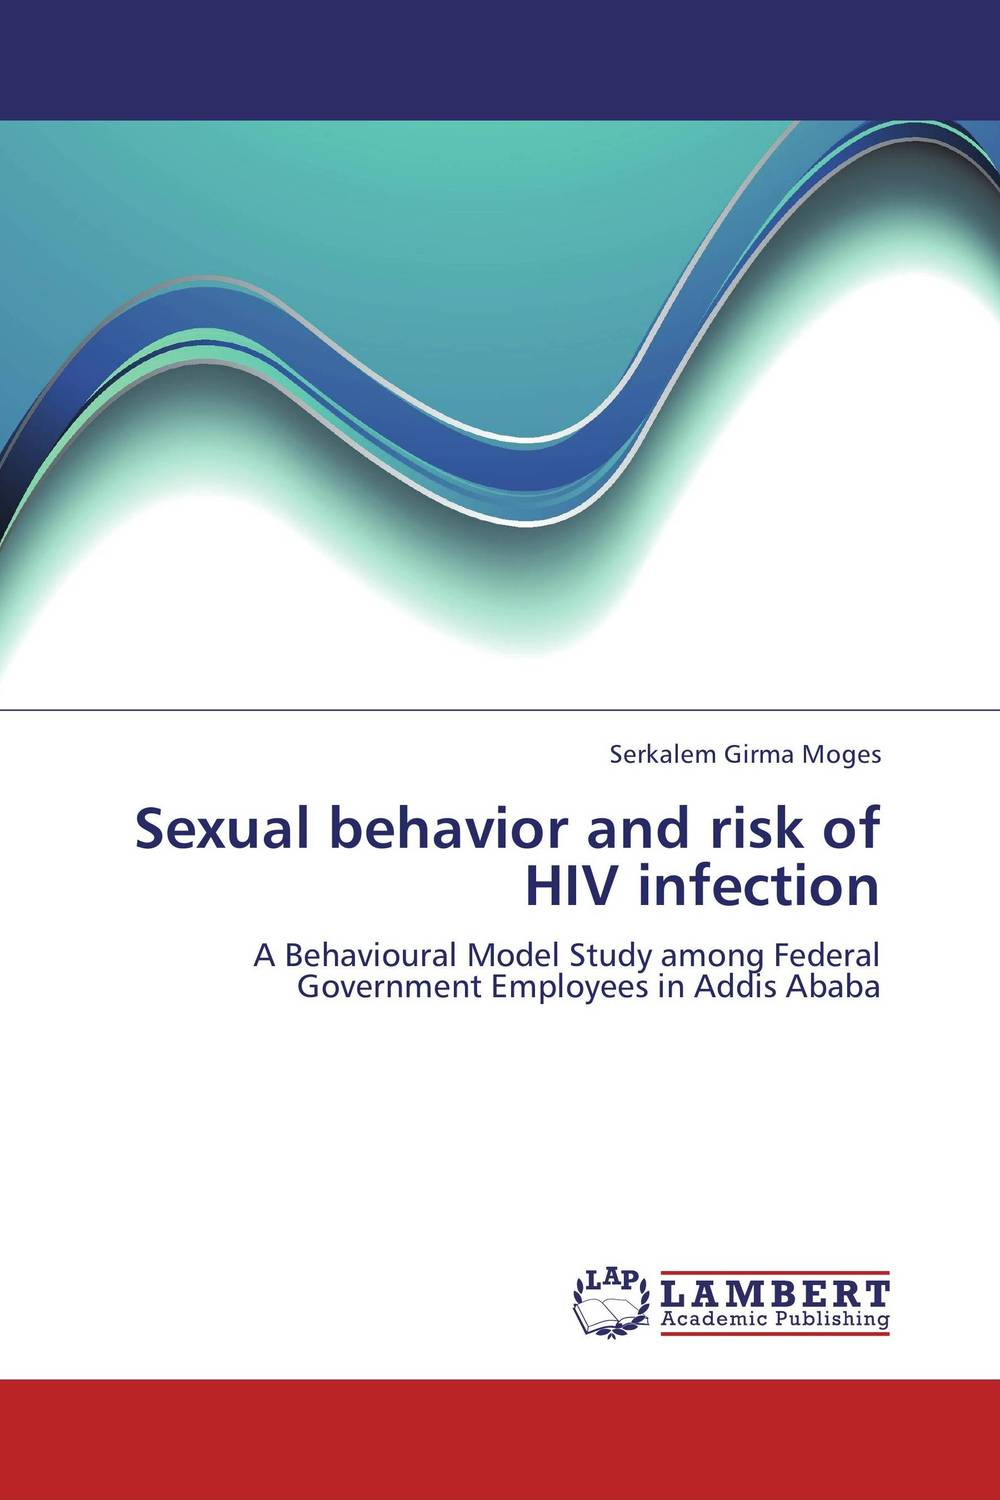 Sexual behavior and risk of HIV infection akine eshete assessment of risky sexual behavior and parental communication